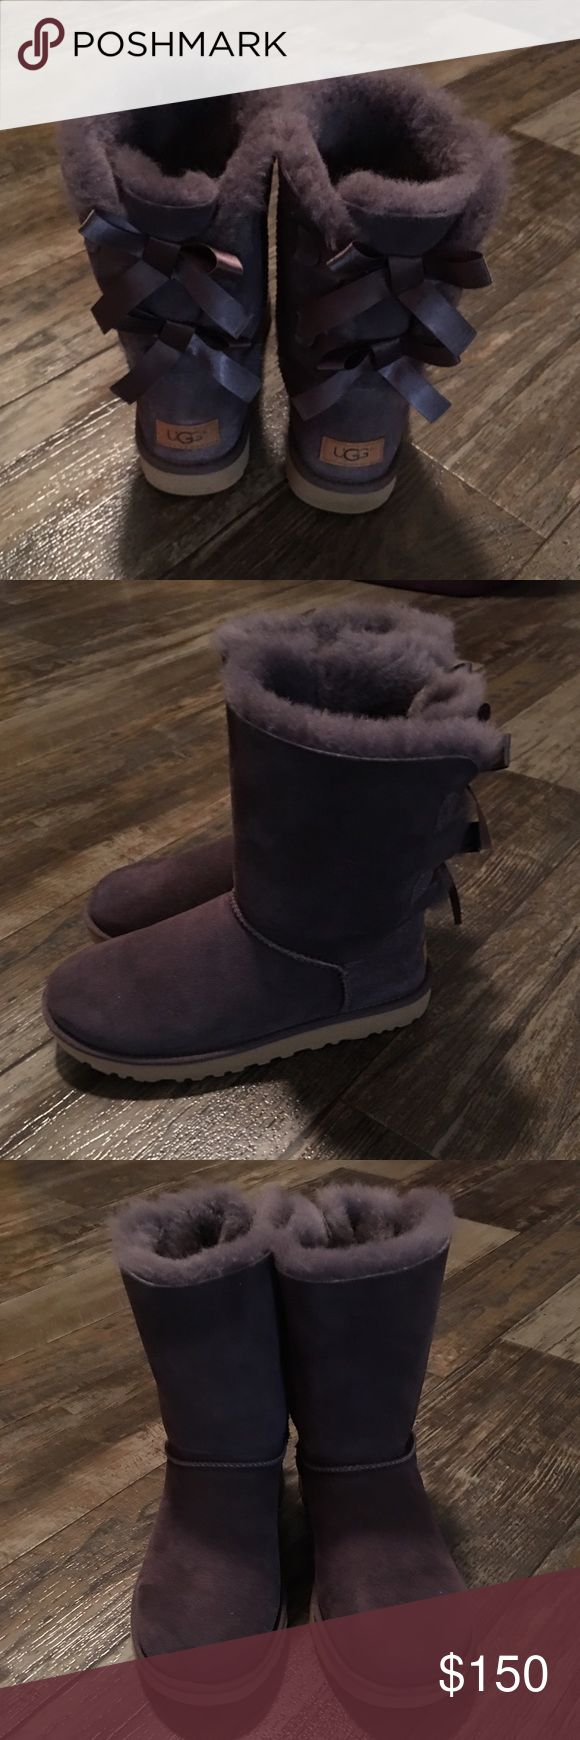 Authentic Uggs 100% Authentic Ugg Boots. Bailey Bow. Light Purple. Box available upon request. Purchased directly from Ugg store at Christmas. Runs big. Fits ladies 8.5. Looks brand new. Never been in snow or water. No stains or rips. UGG Shoes Winter & Rain Boots